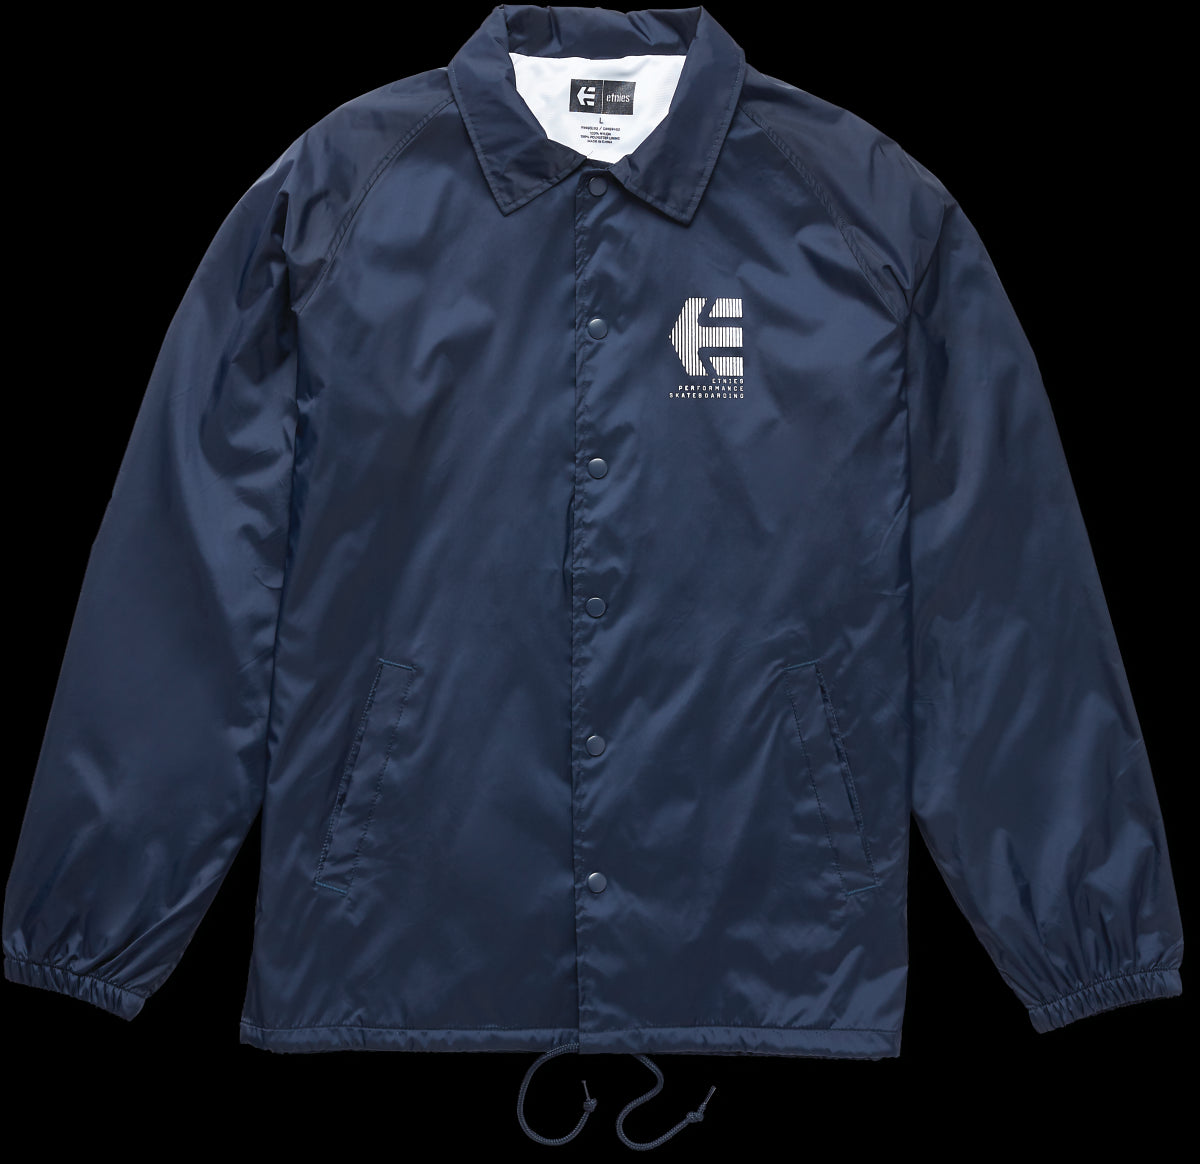 Etnies Ply Coaches Jacket - Navy